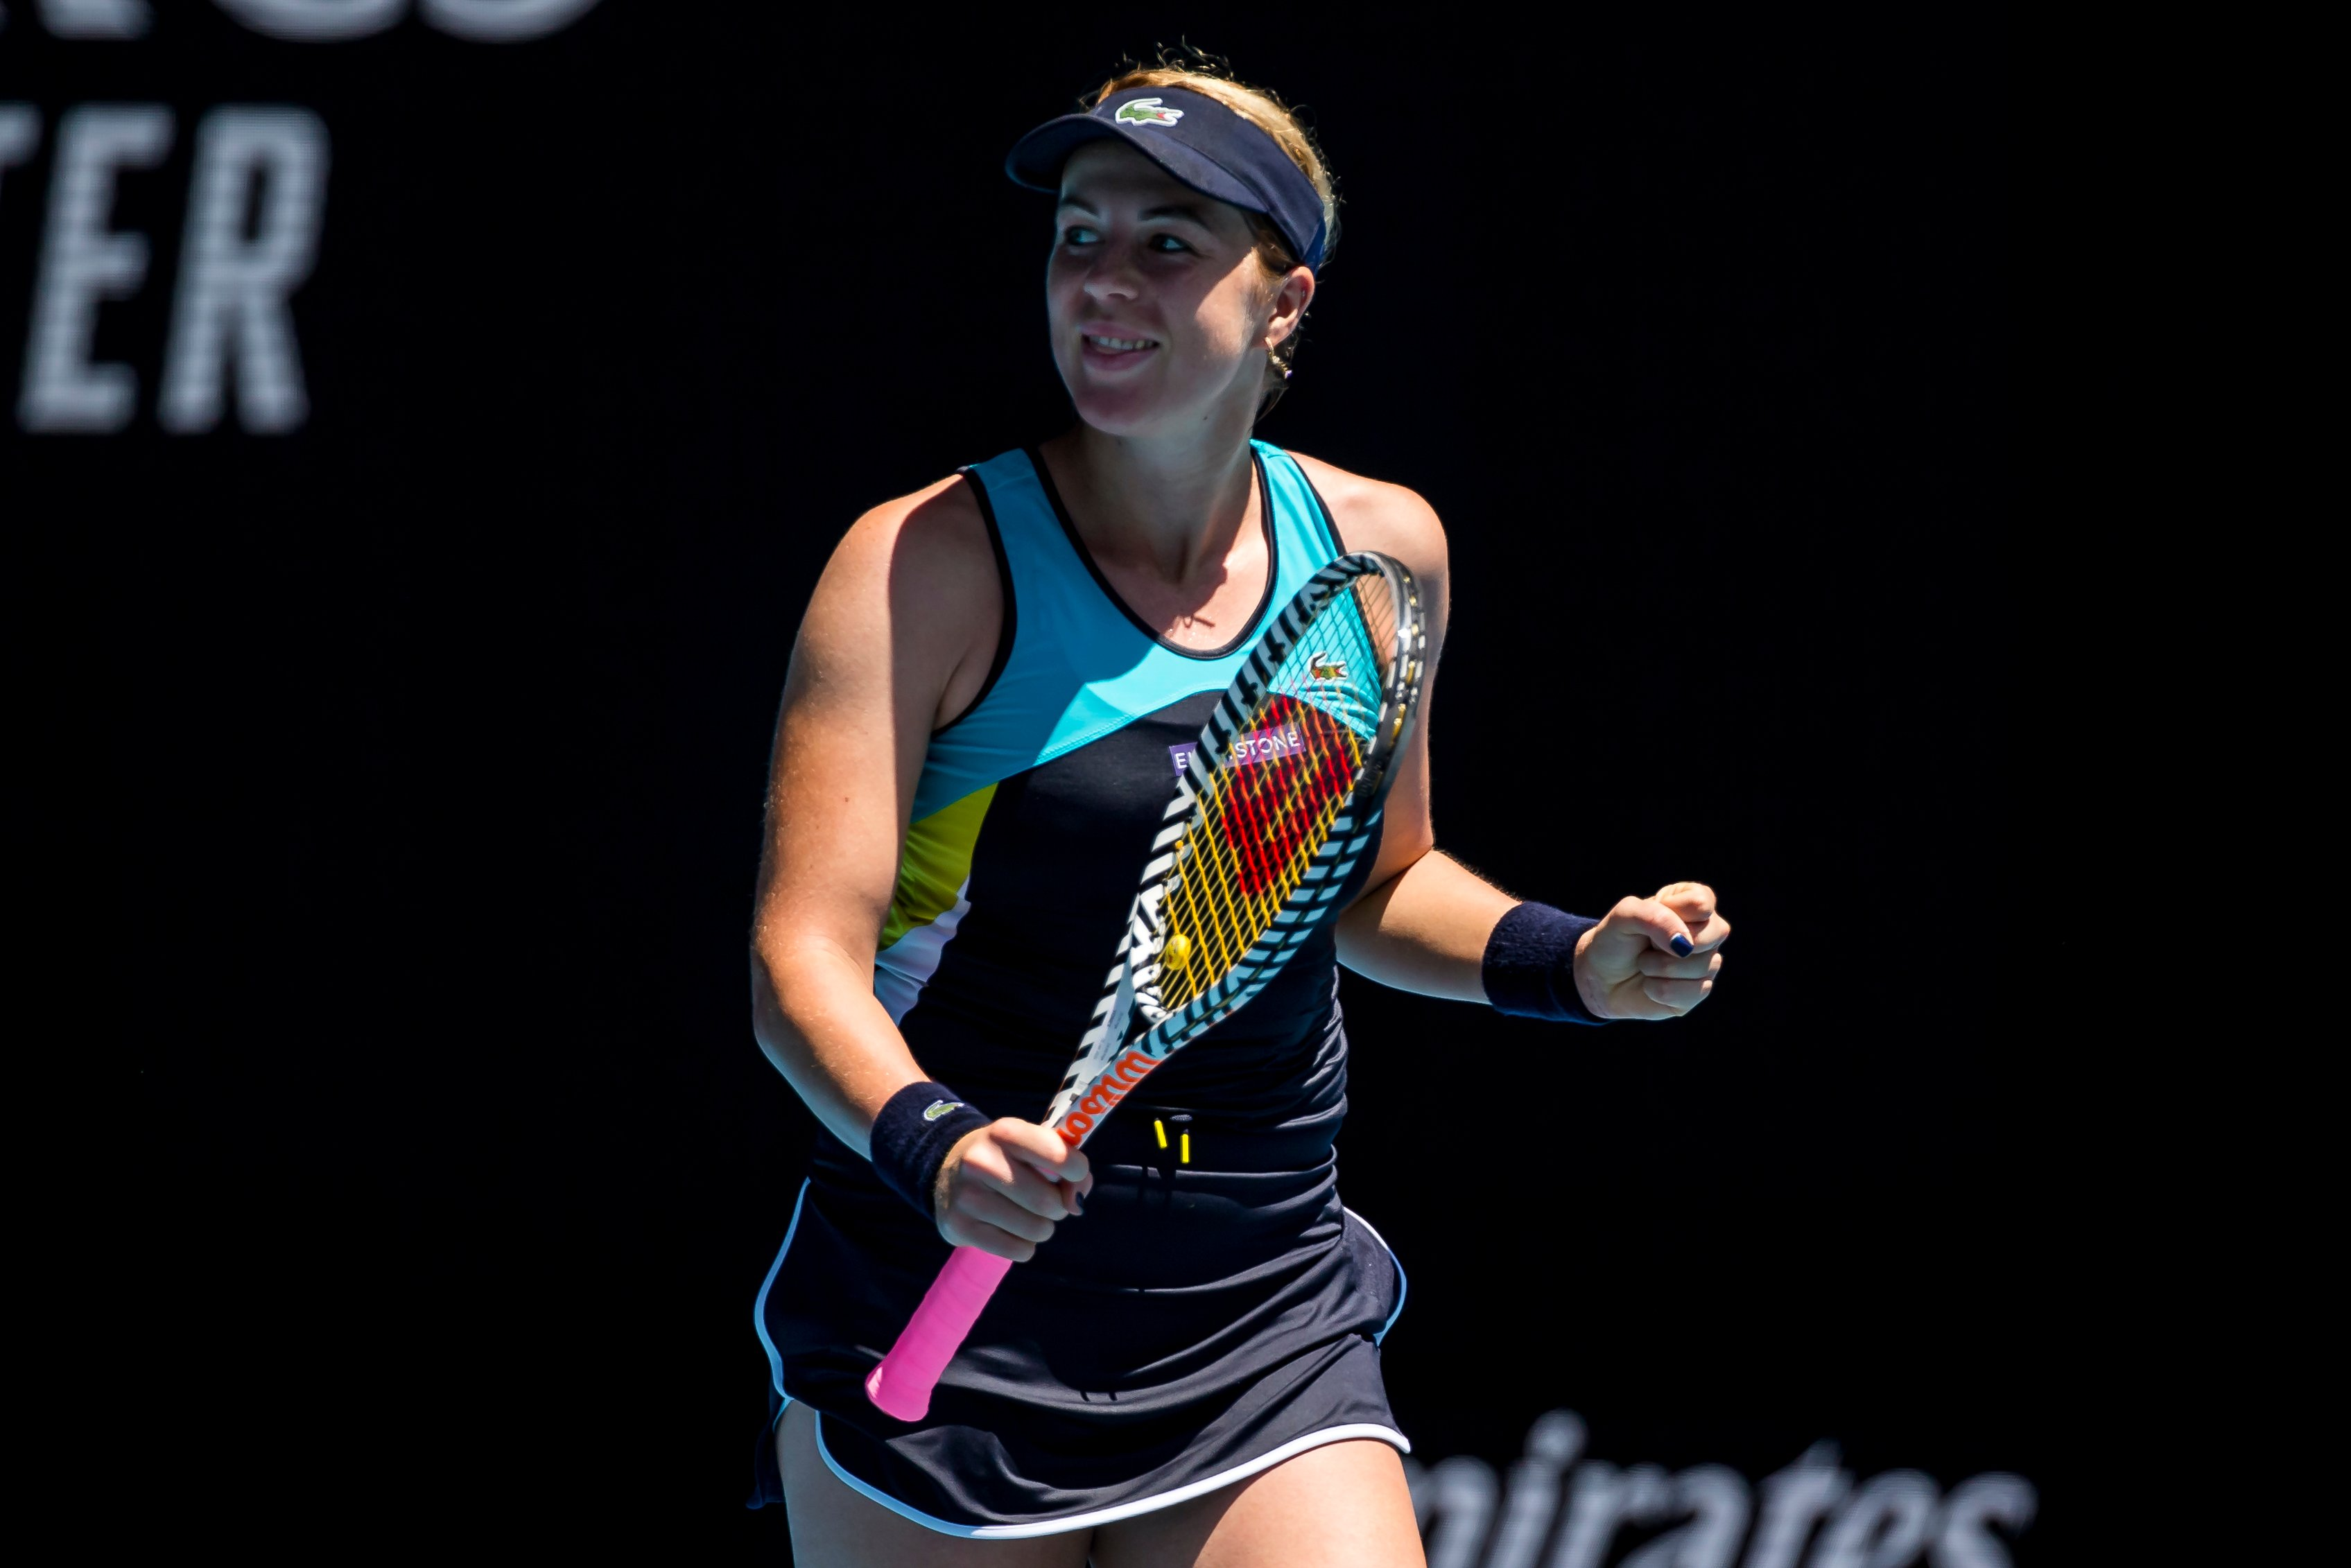 Pavlyuchenkova stuns Kerber at Australian Open to set up Muguruza quarter-final clash